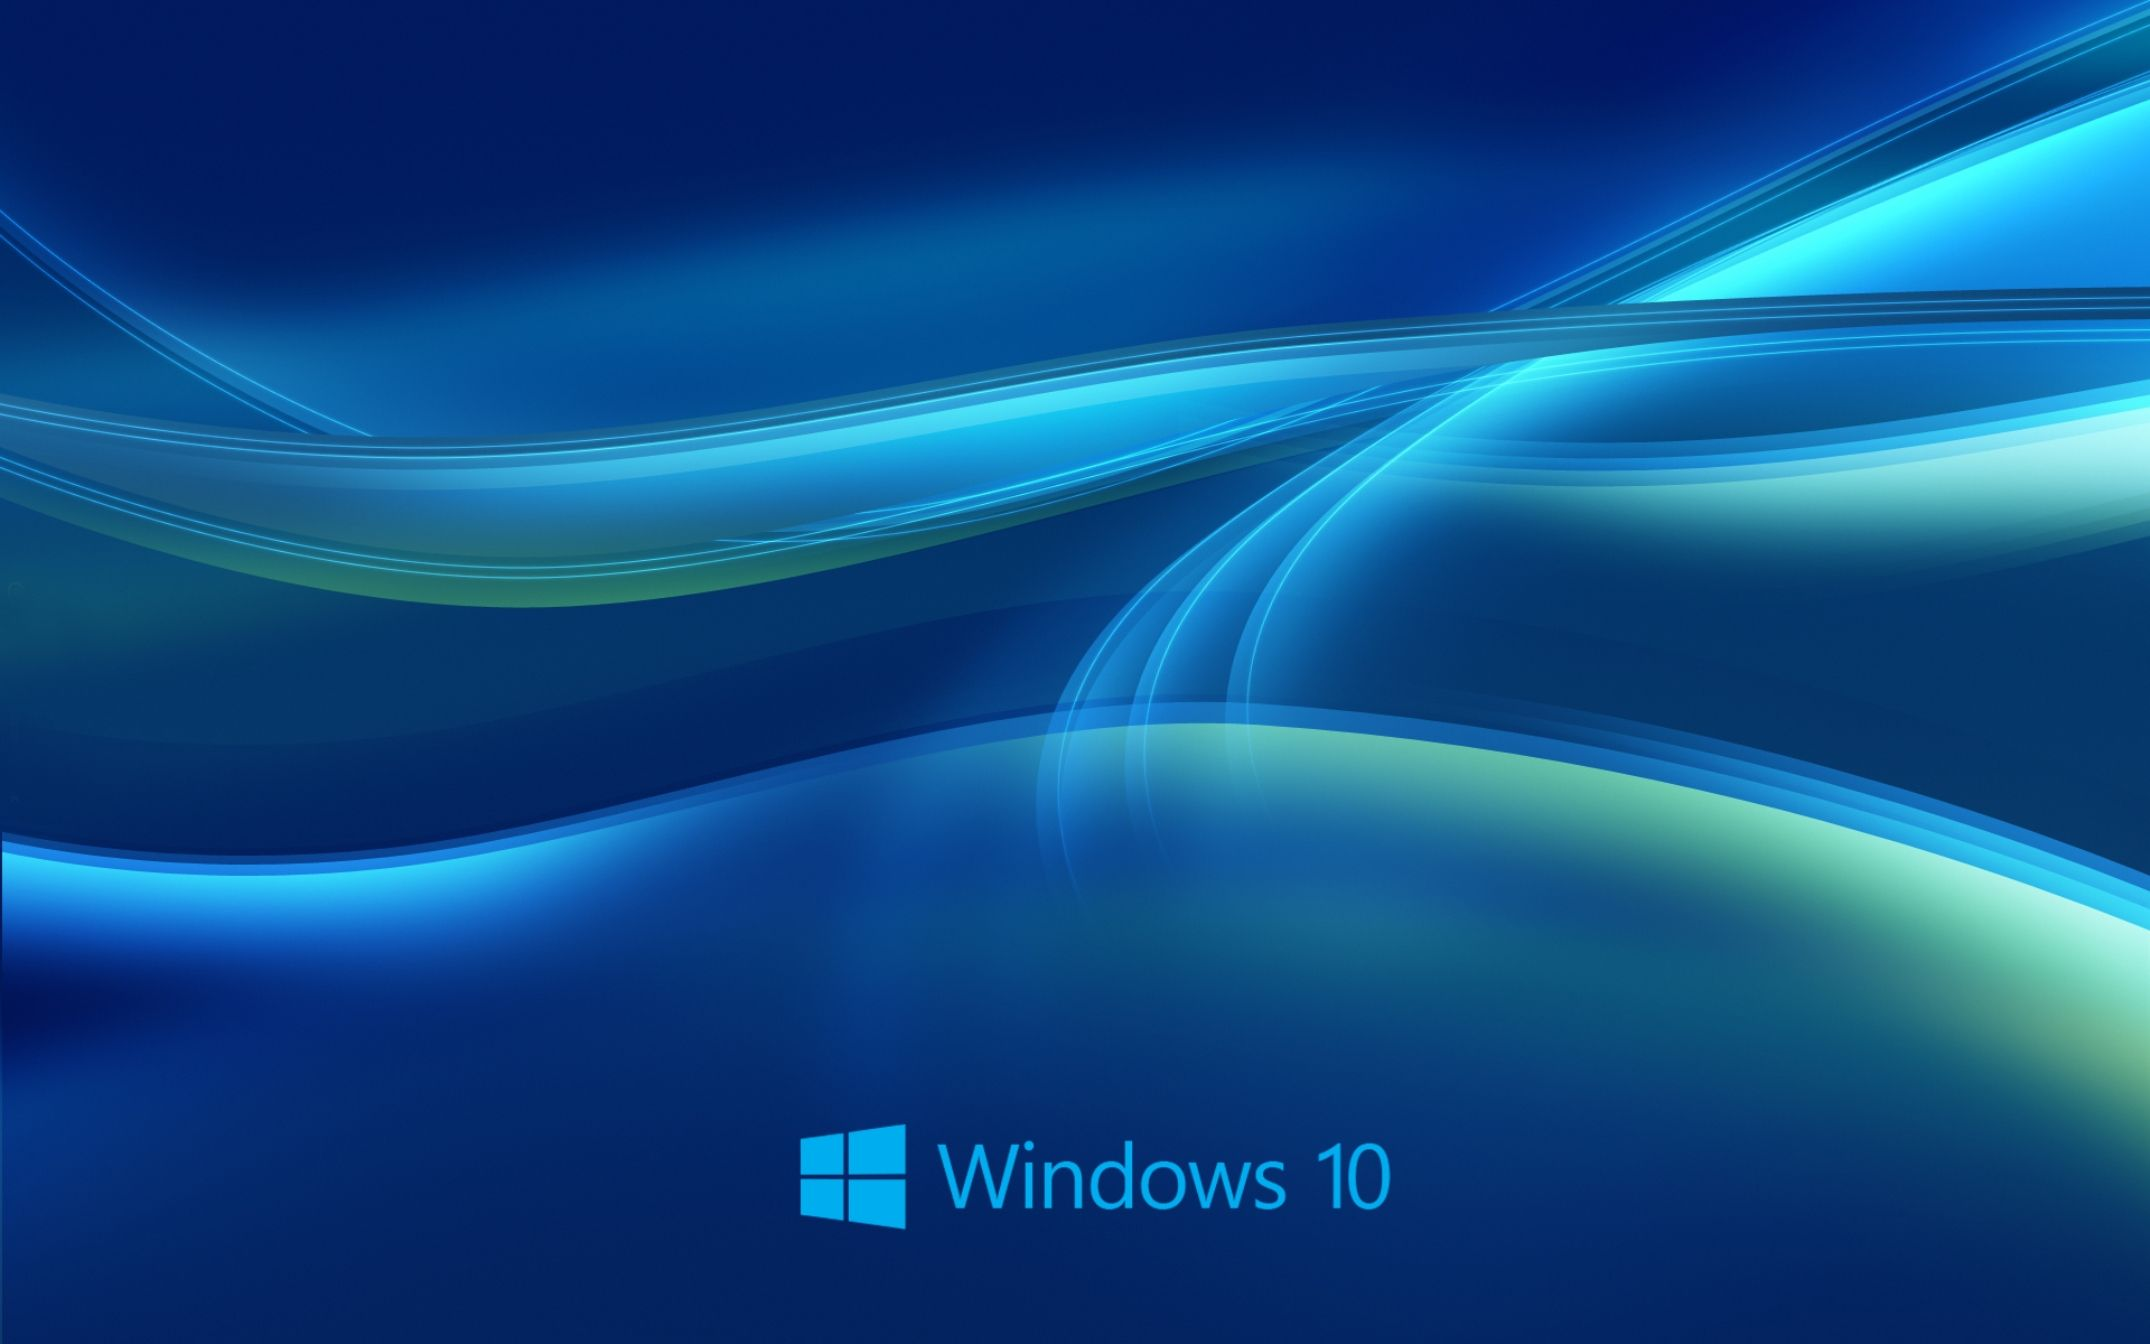 Hd Wallpaper For Laptop Full Screen Windows 10 Kadadaorg